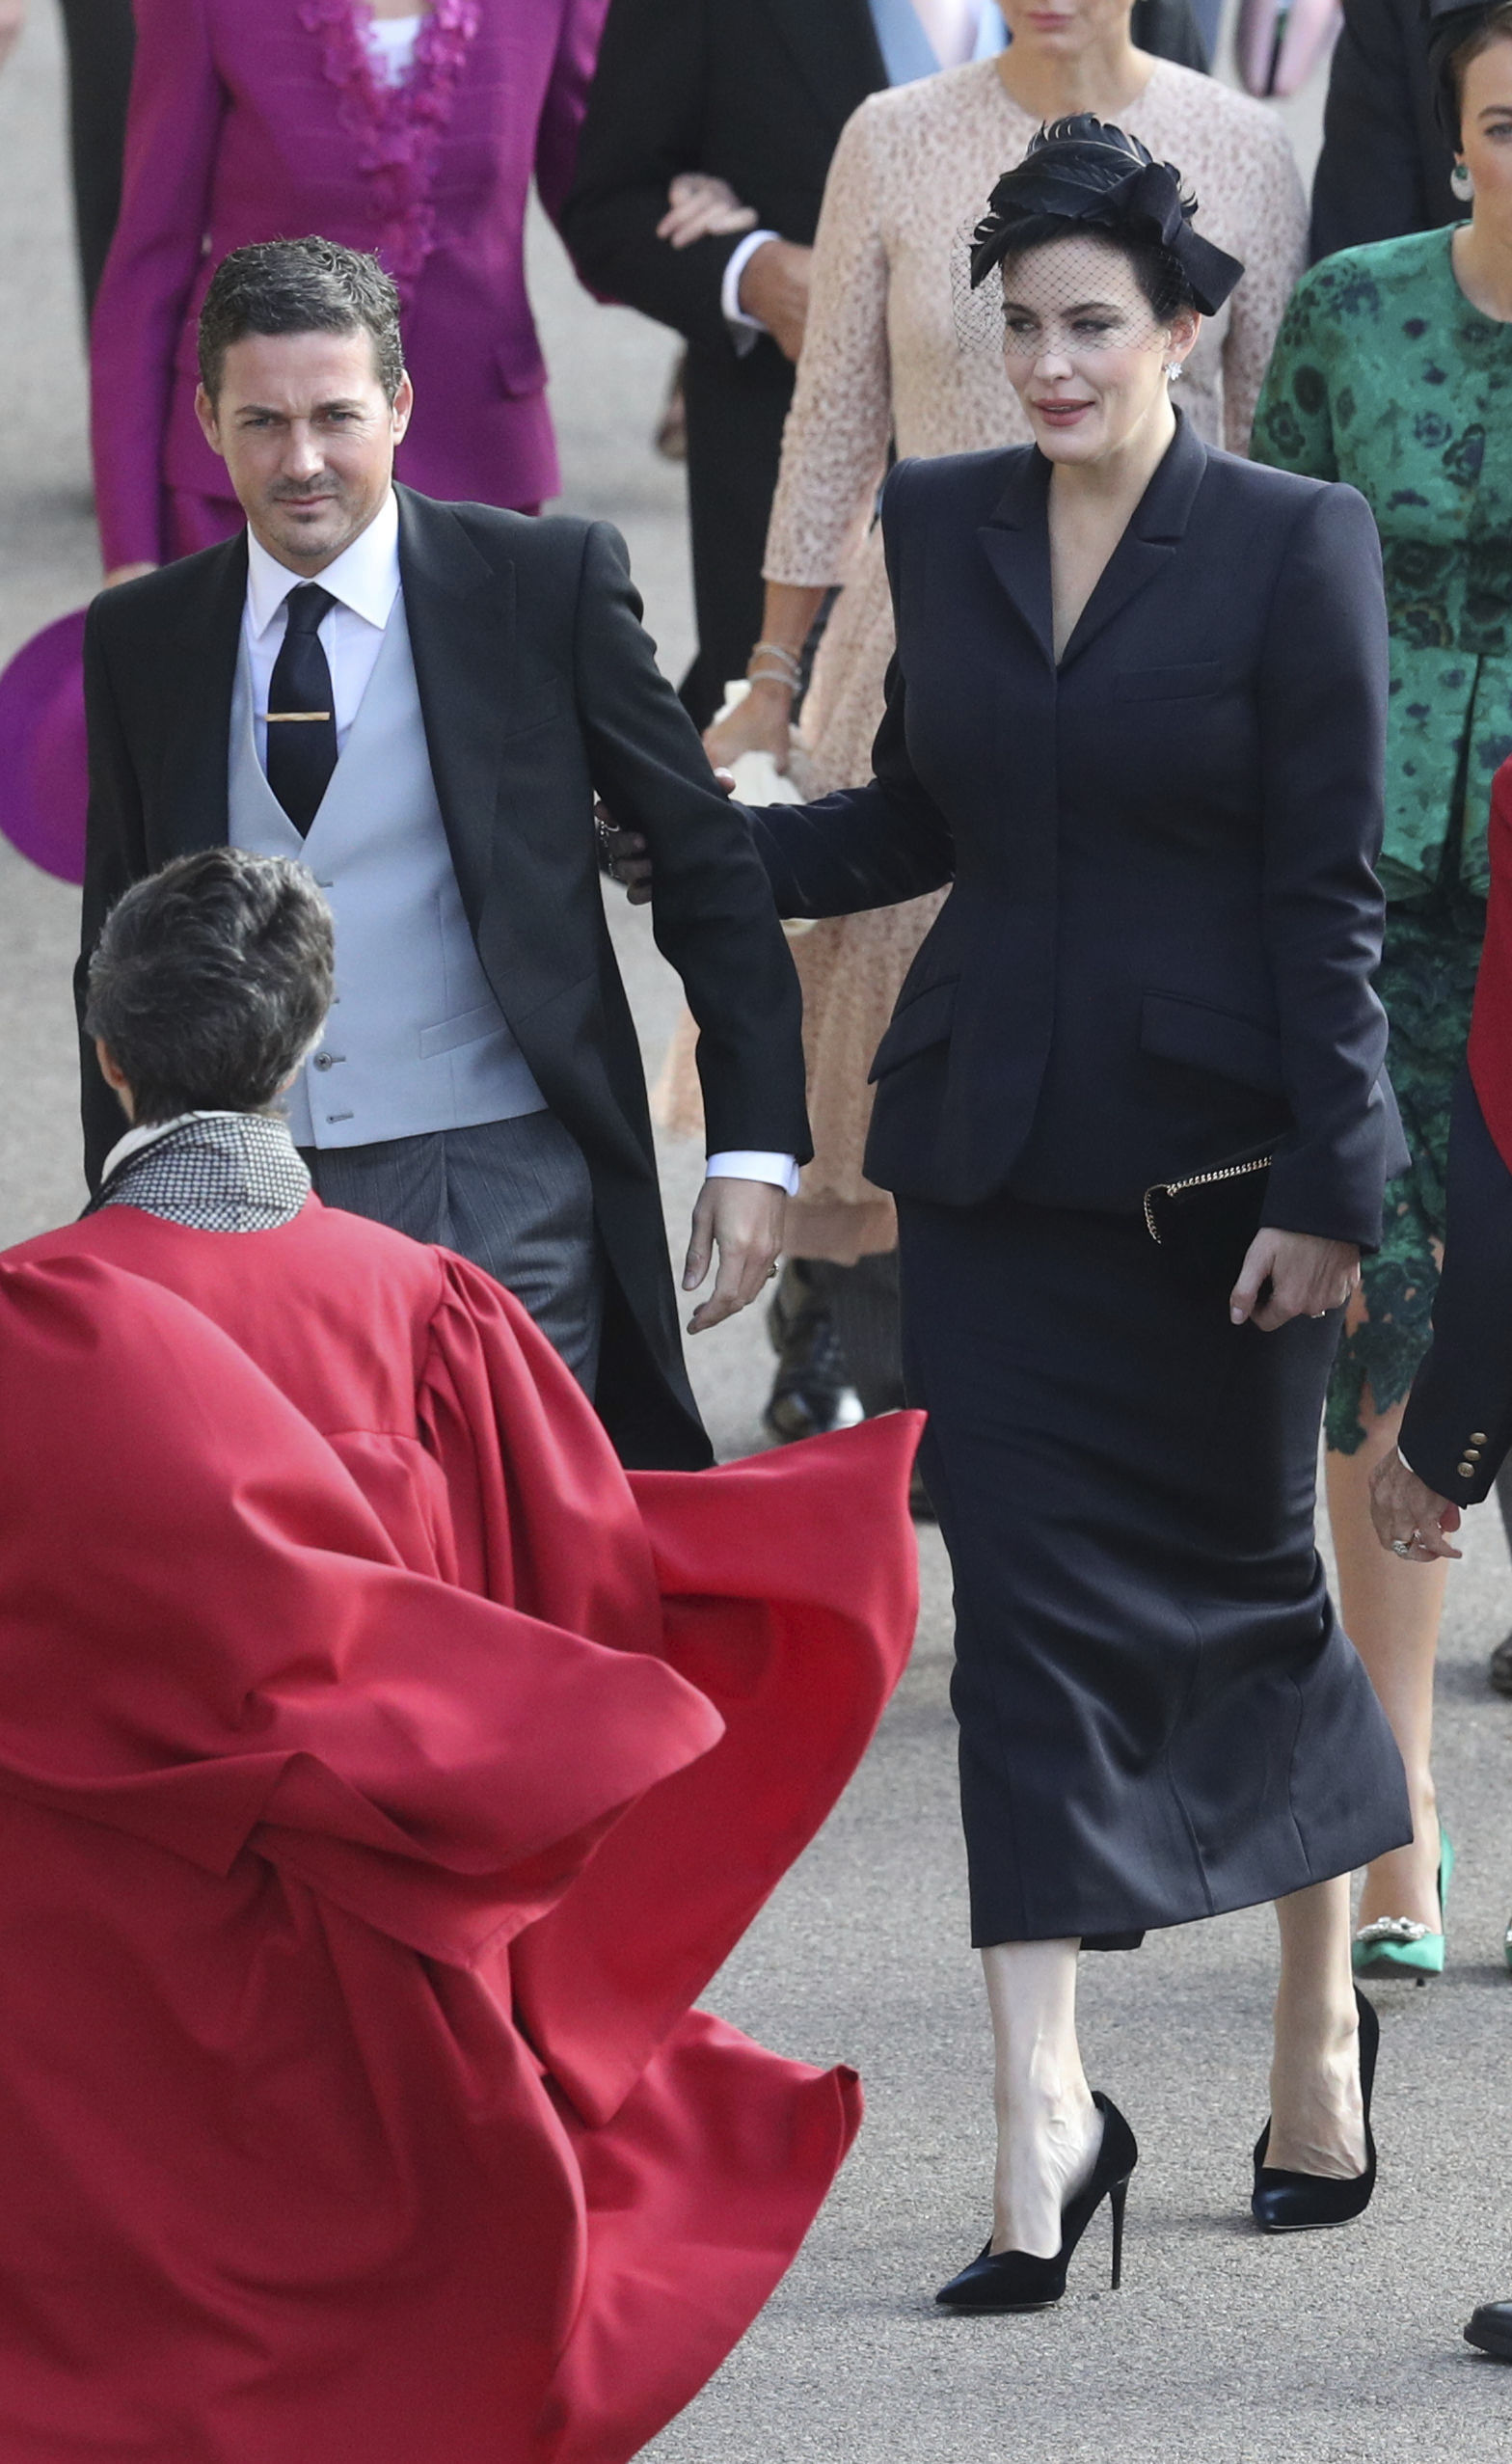 <div class='meta'><div class='origin-logo' data-origin='none'></div><span class='caption-text' data-credit='Andrew Matthews/Pool via AP'>Liv Tyler arrives for the wedding of Princess Eugenie of York and Jack Brooksbank at St George's Chapel, Windsor Castle, near London, England, Friday Oct. 12, 2018.</span></div>